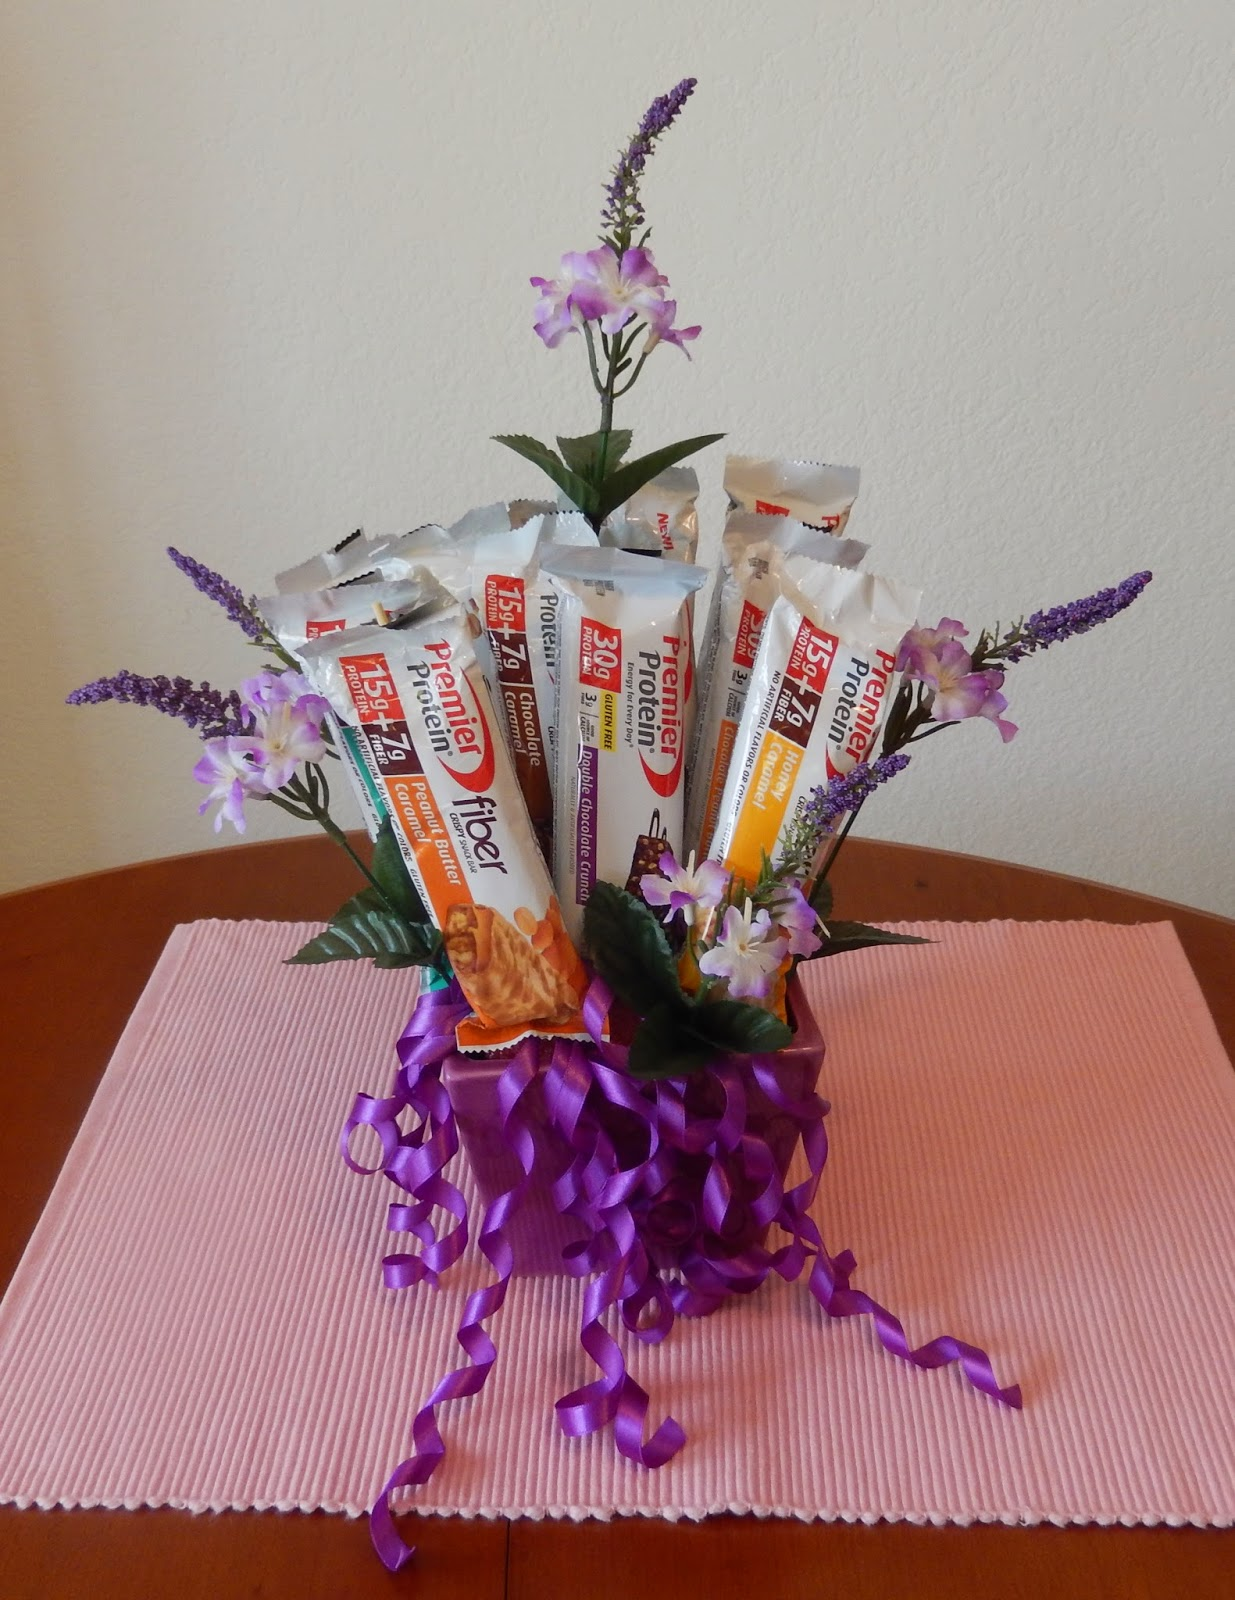 Premier%2BProtein%2BBar%2BThe%2BWorld%2BAccording%2Bto%2BEggface%2BMothers%2BDay%2BBouquet%2BBirthday Weight Loss Recipes DIY Craft Project: Protein Bar Bouquet